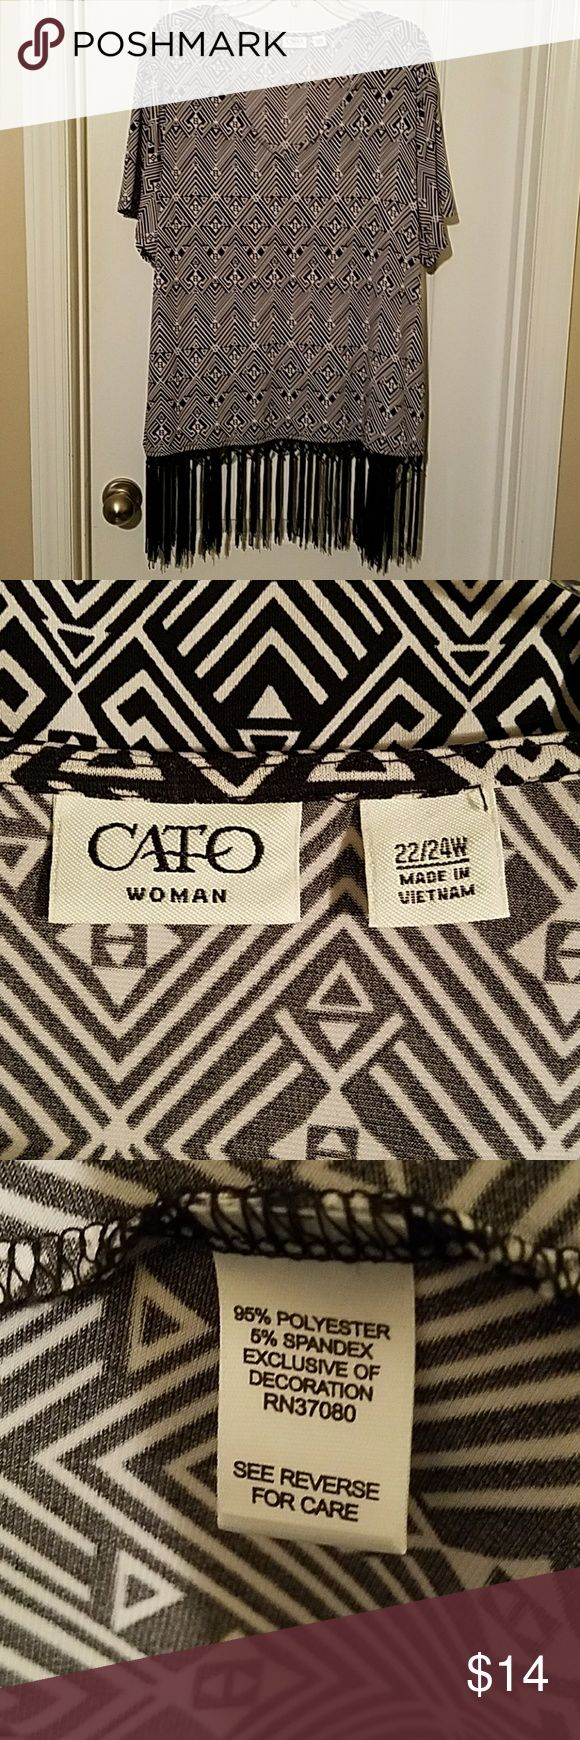 """❣Sale Today Only❣NWOT ❣Tribal Print Fringed Top Never worn! Black and white tribal print top with fringe. 95% Polyester 5% Spandex.   Size 22/24. Bust 26.5"""". Length (not including fringe) 26.5"""". Fringe 7"""" Cato Tops"""